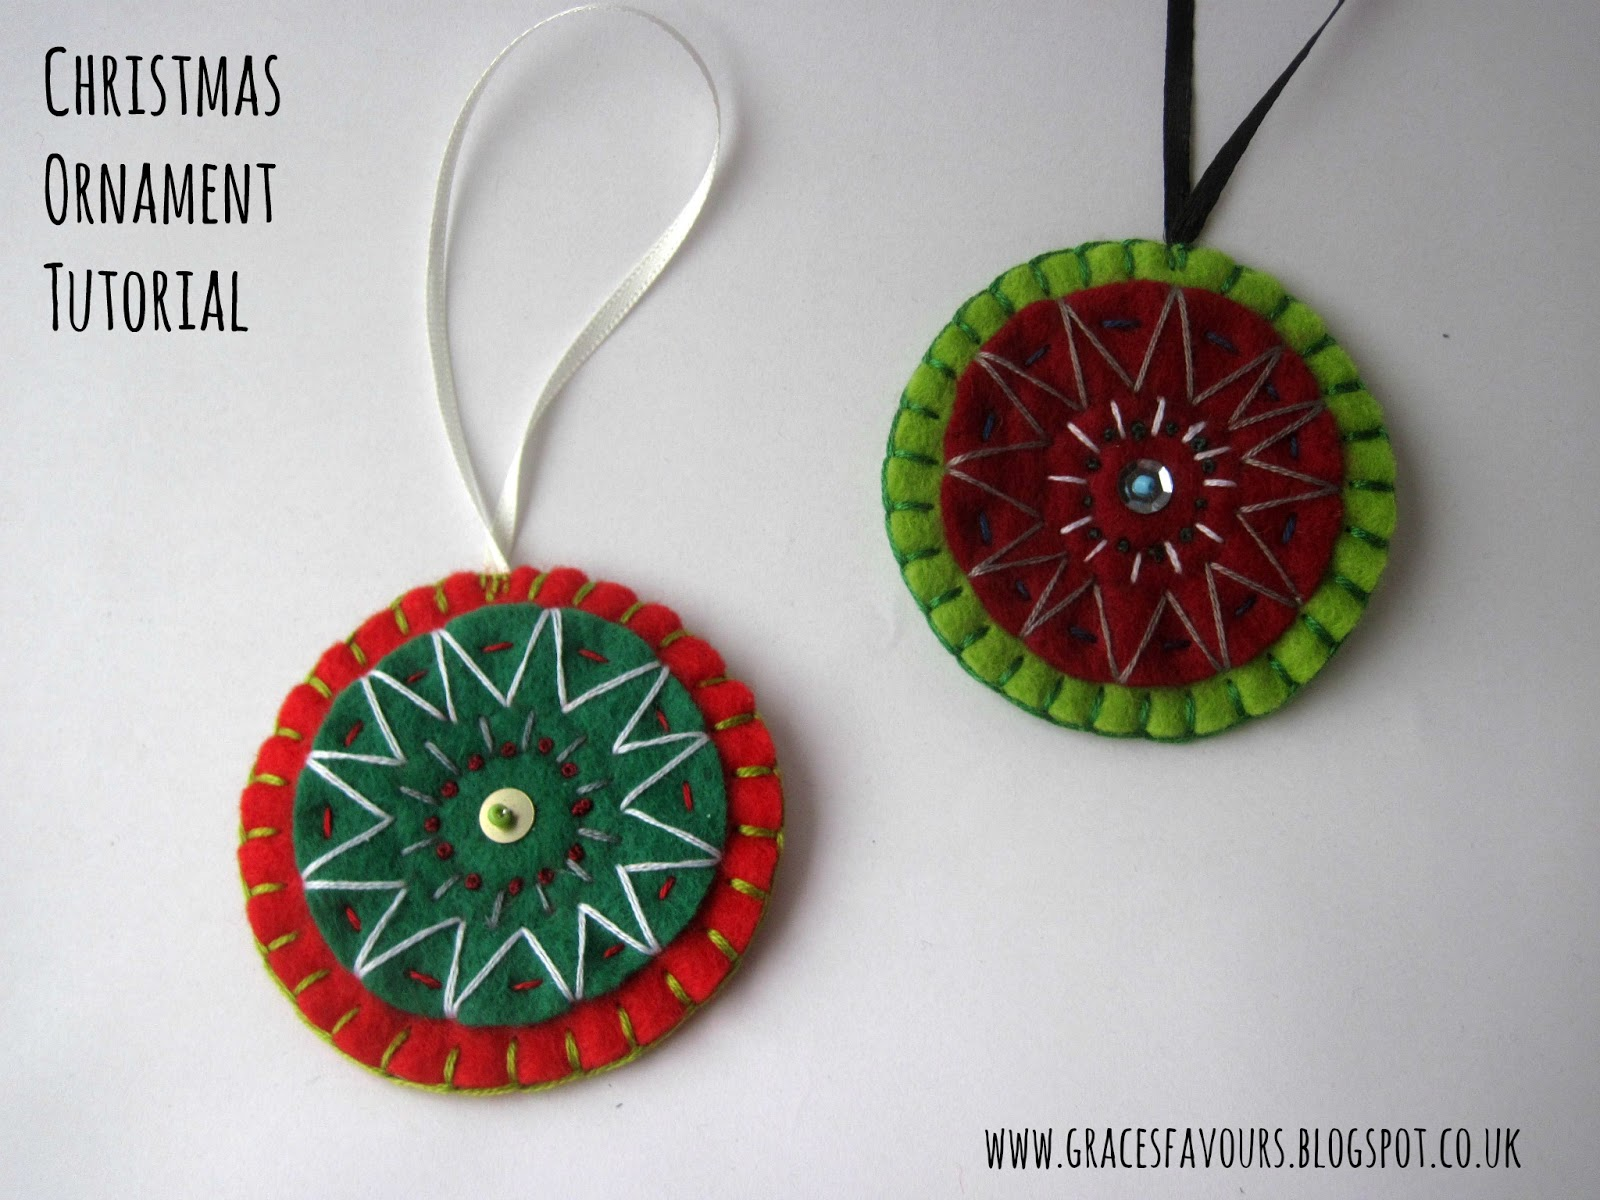 Graces favours craft adventures how to make an easy felt how to make an easy felt christmas ornament sew your own tutorial solutioingenieria Gallery